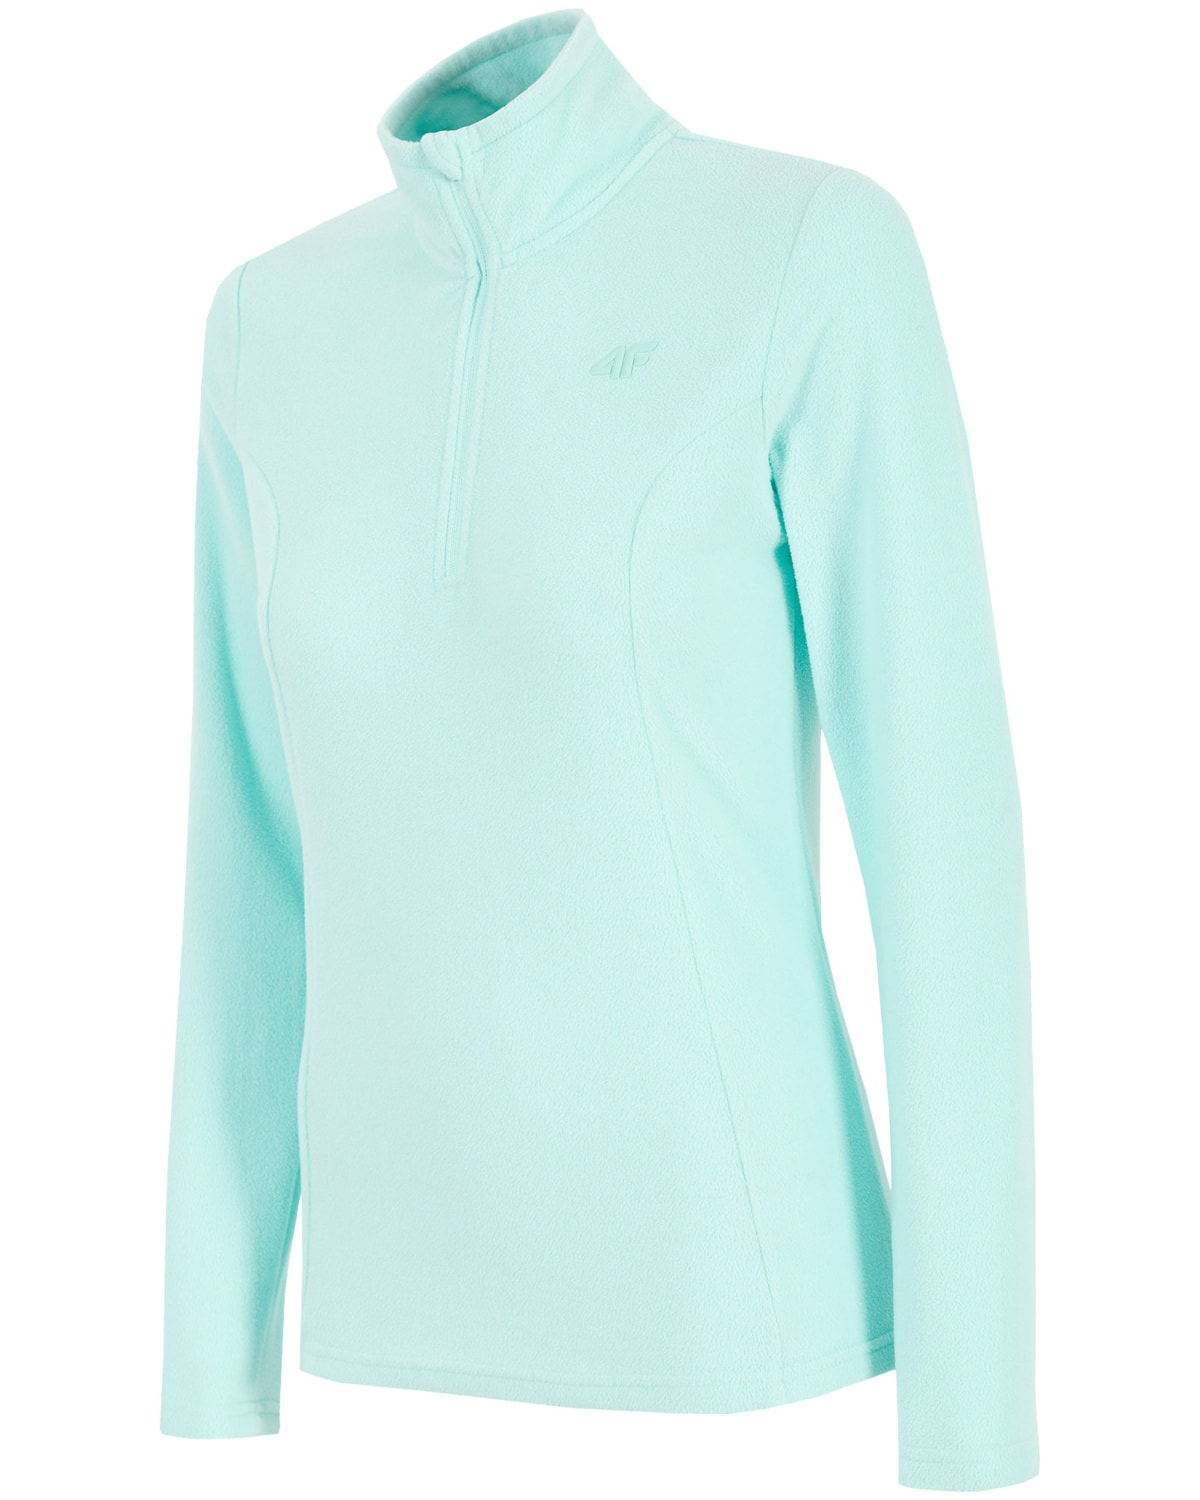 4F Fleece Zip Women X4Z18-BIDP352-MINT